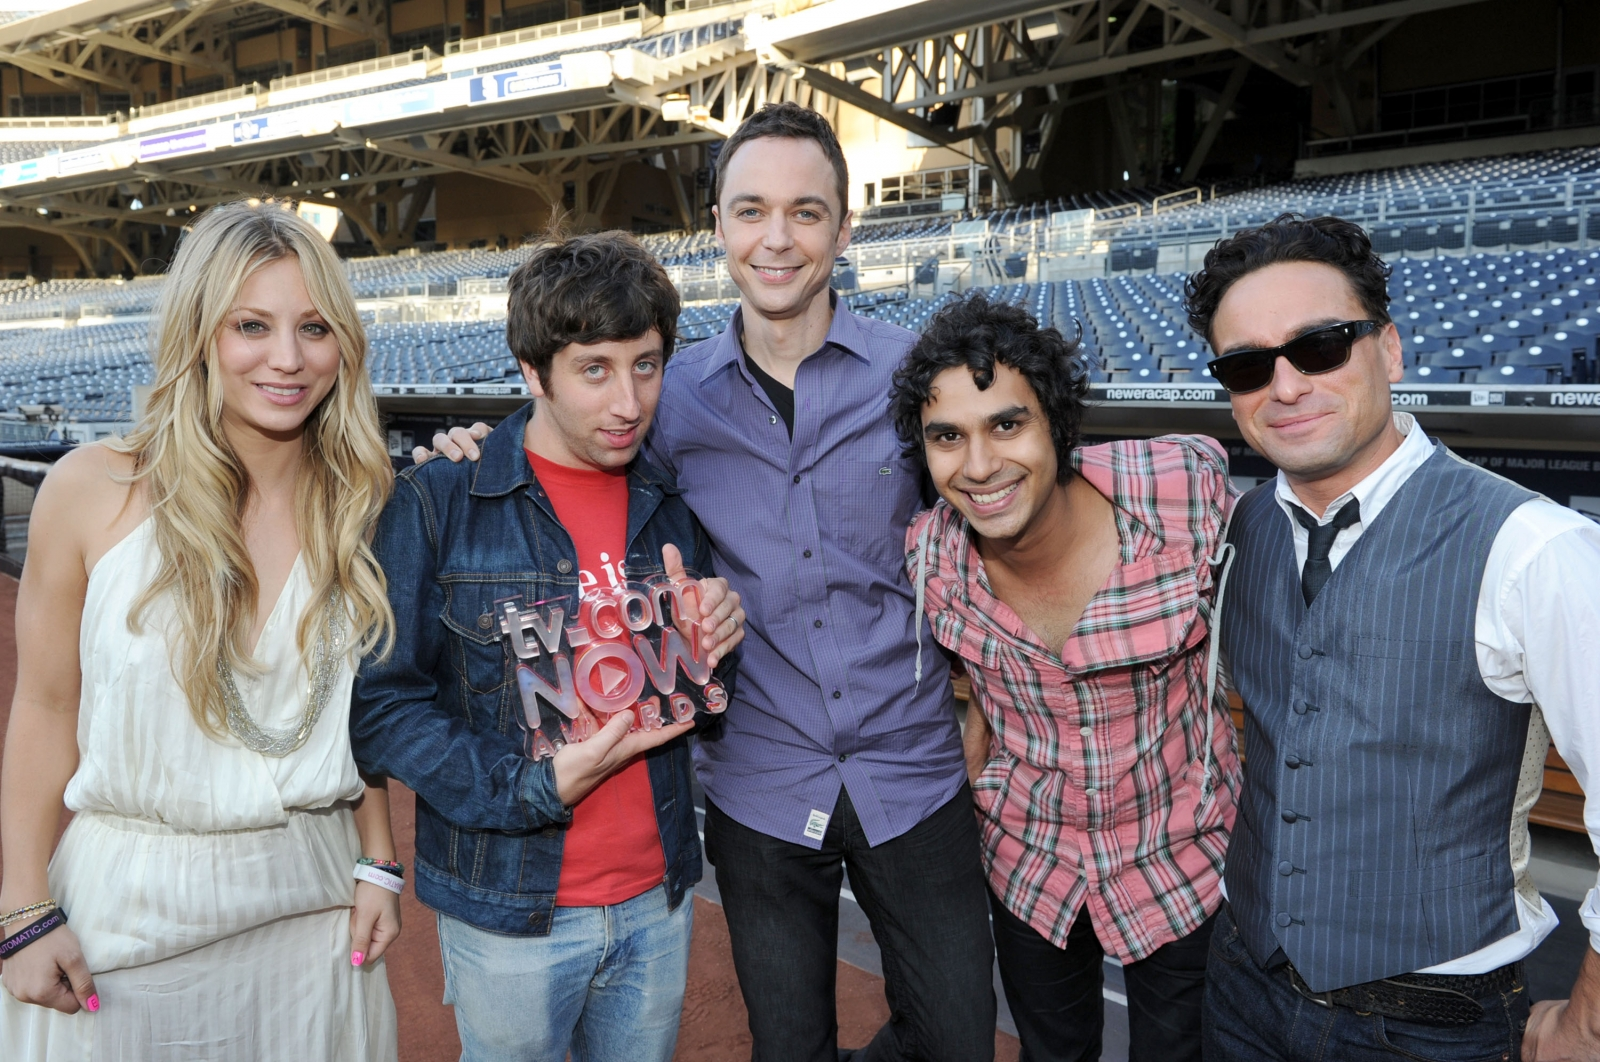 Big Bang Theory's Kaley Cuoco shares adorable throwback photo from cast's first comic-con appearance